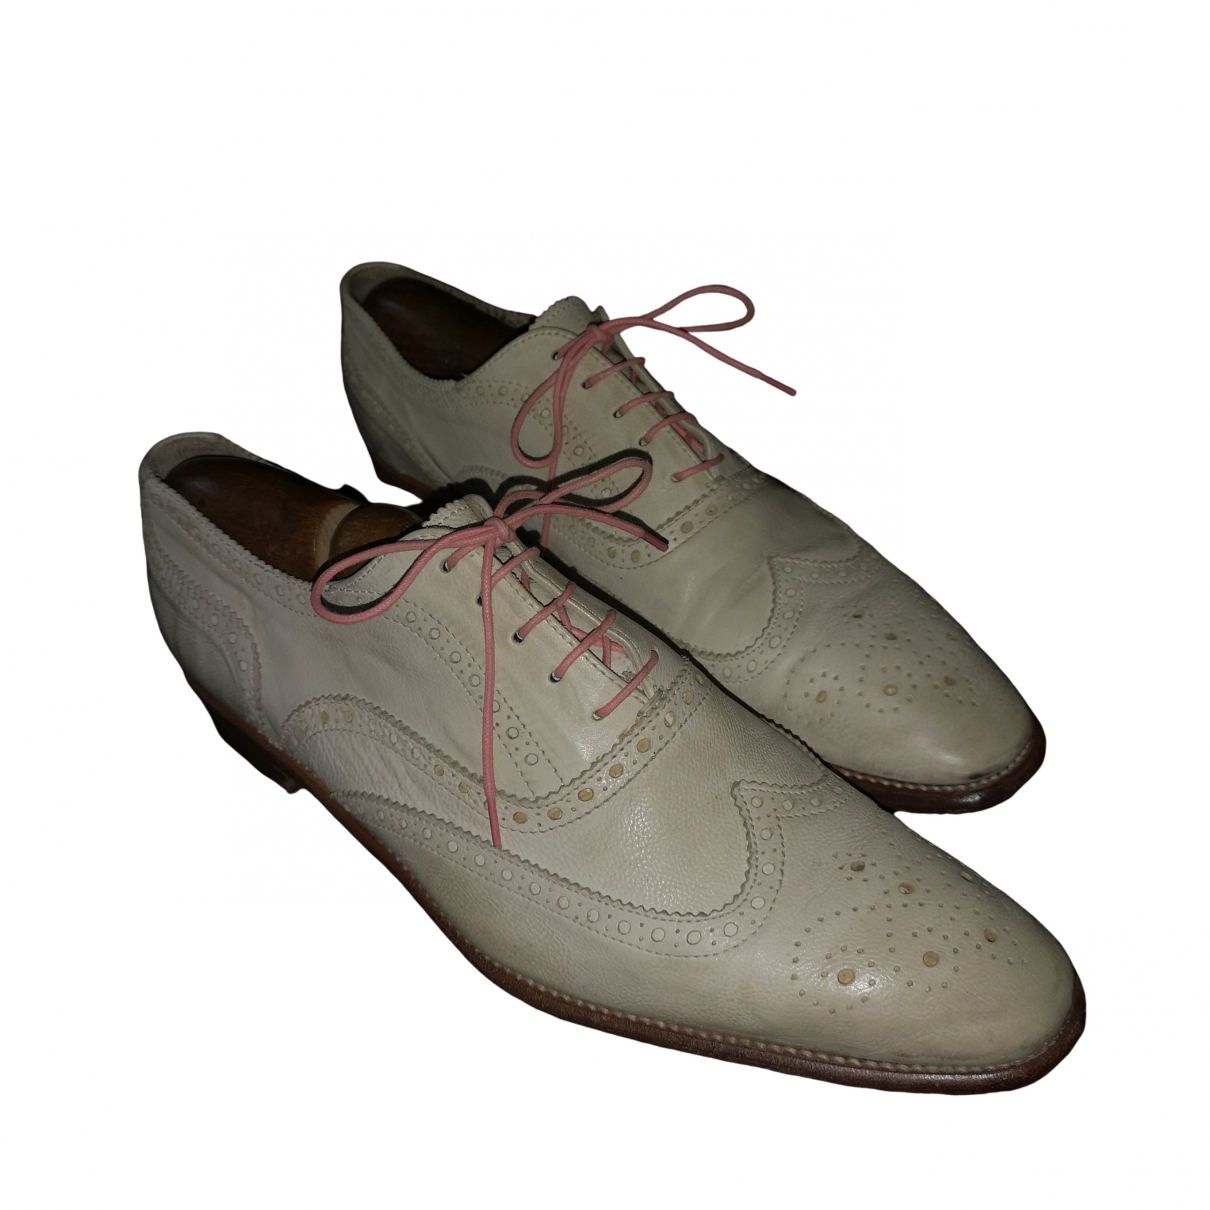 Paul Smith \N Leather Lace ups for Men 8 UK